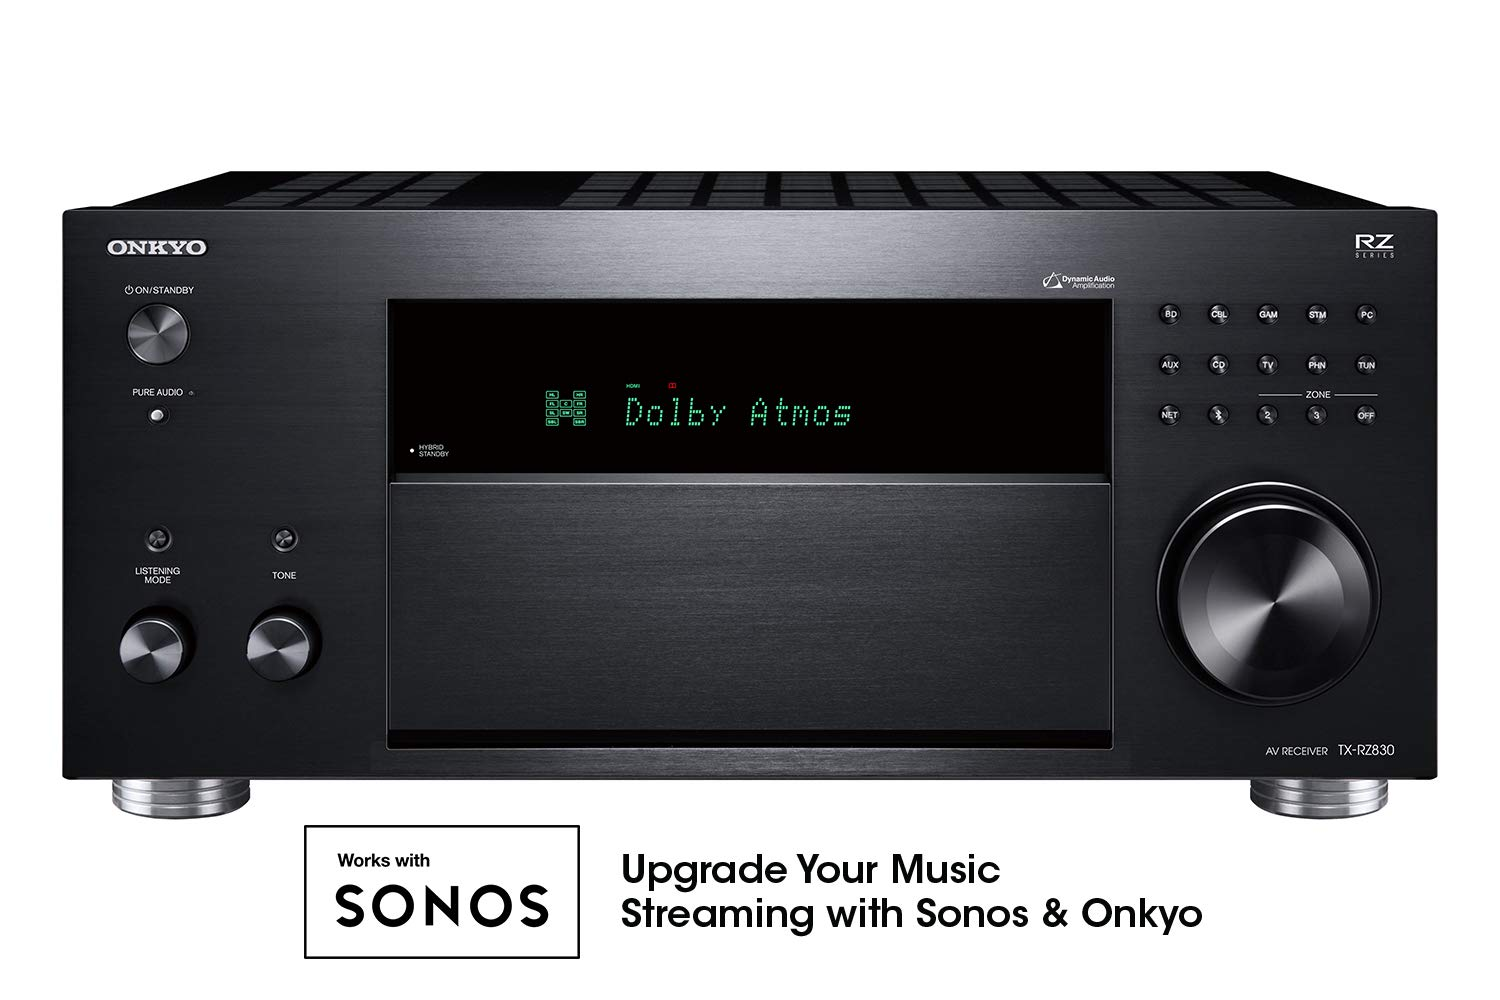 Onkyo TX-RZ830 9.2 Channel 4K Network A/V Receiver Black ONKY9 - pallet ordering